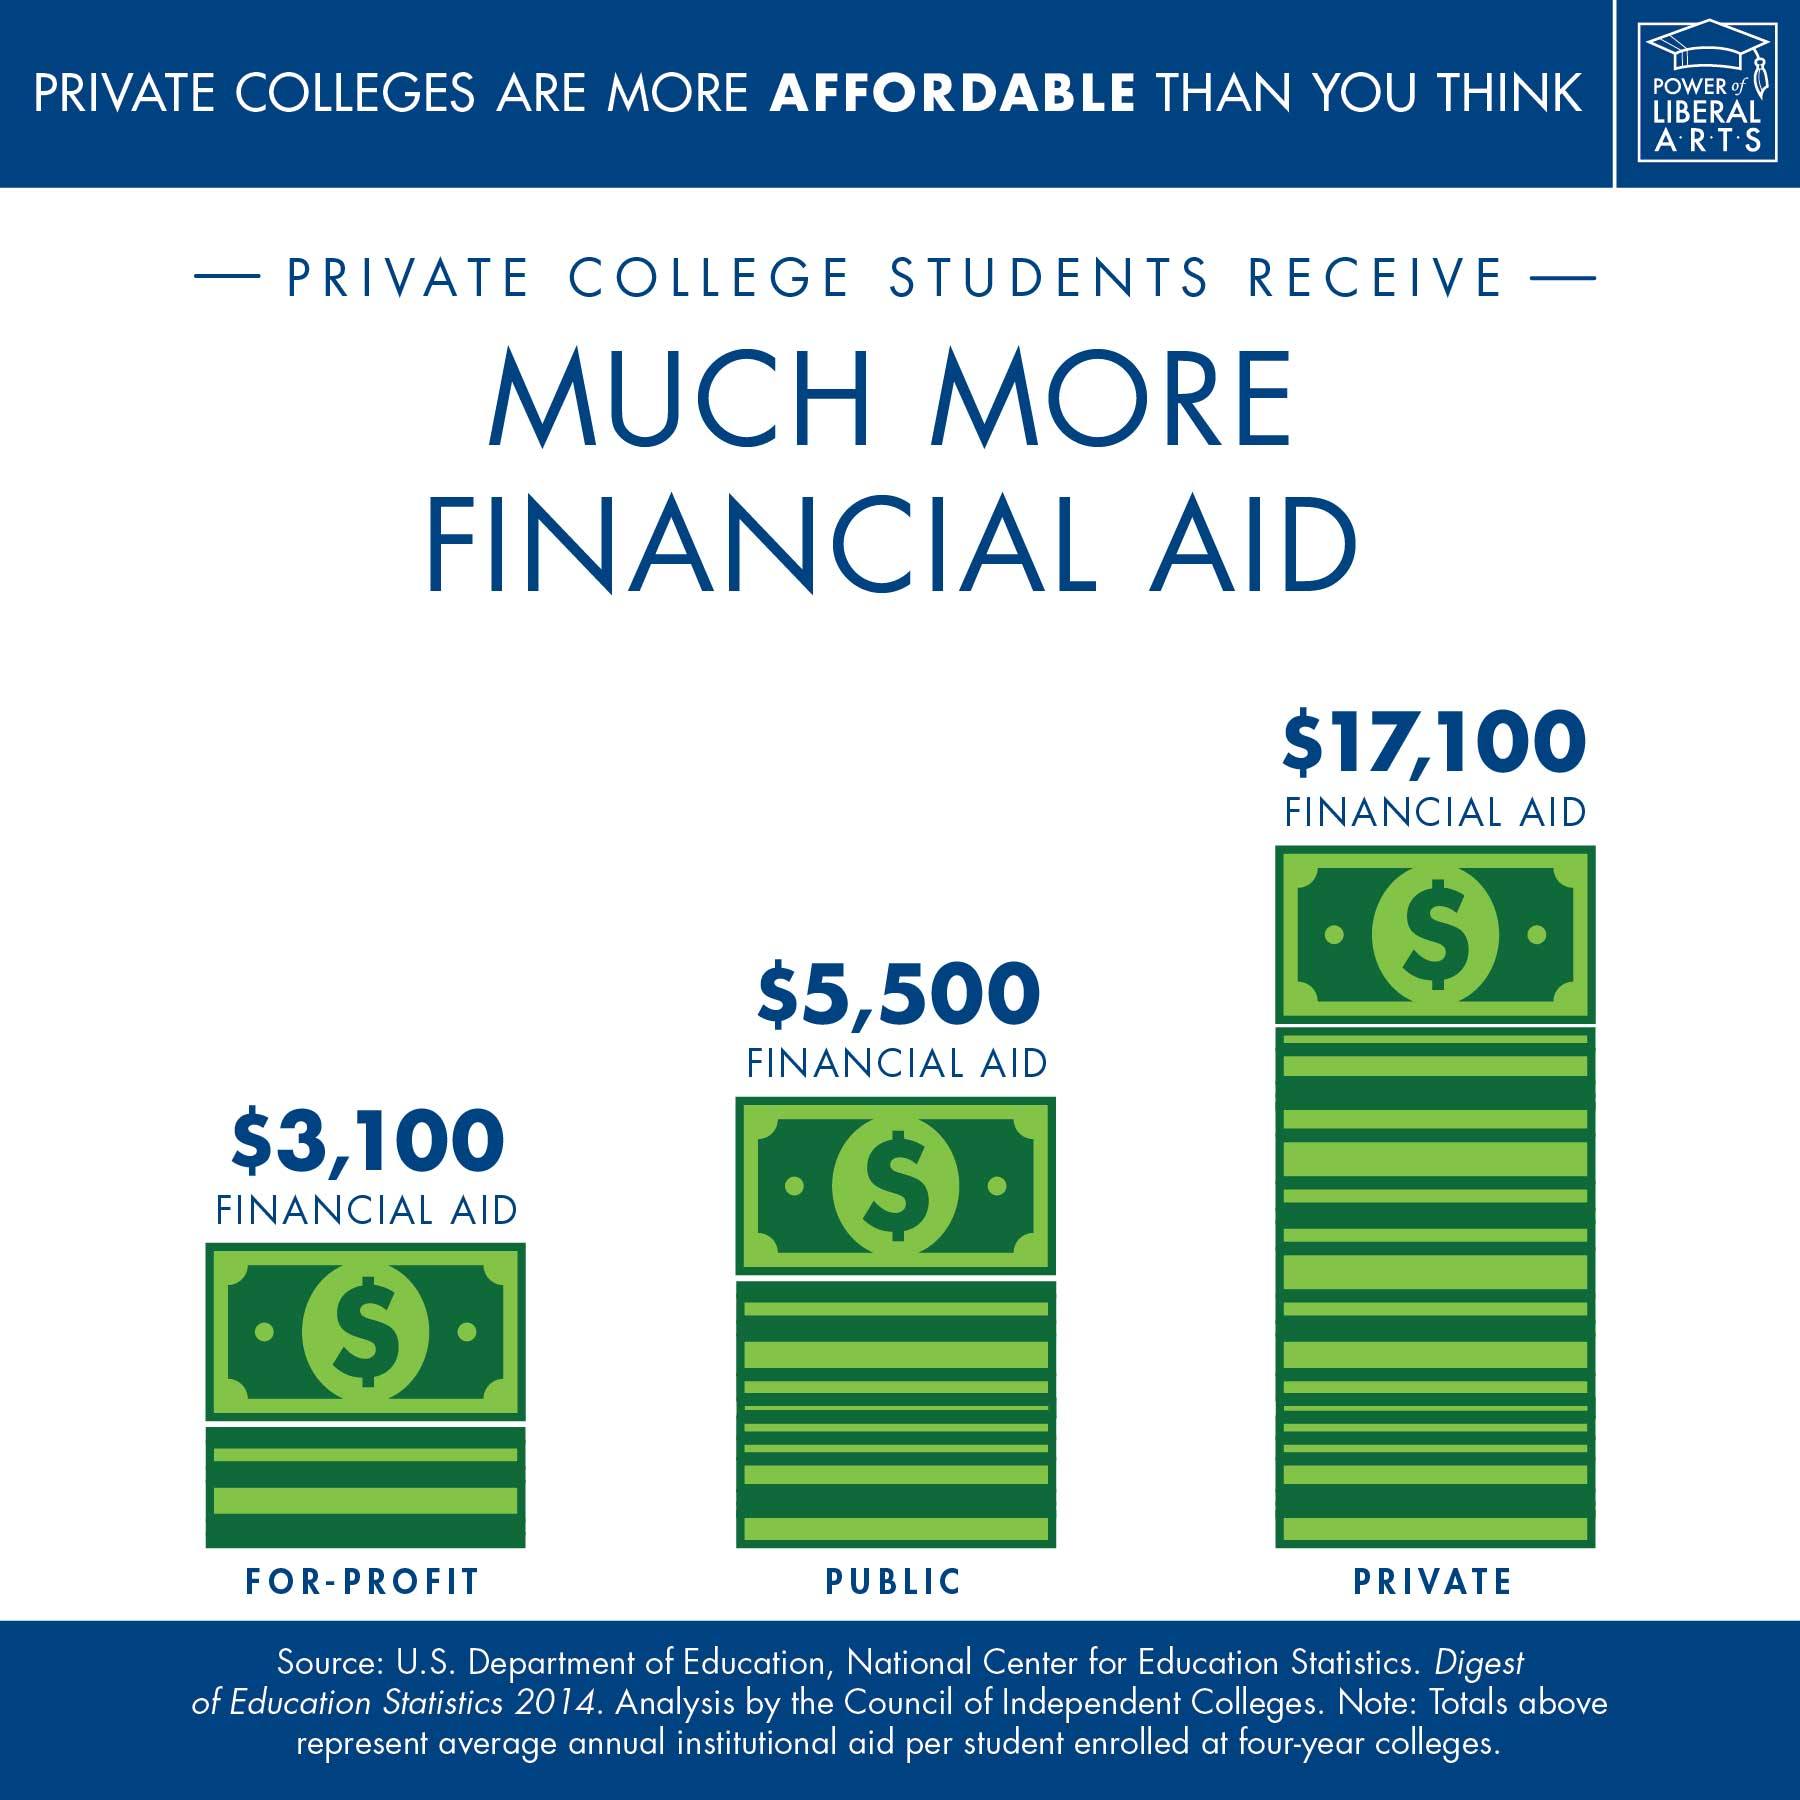 Infographic: Private college students receive much more financial aid